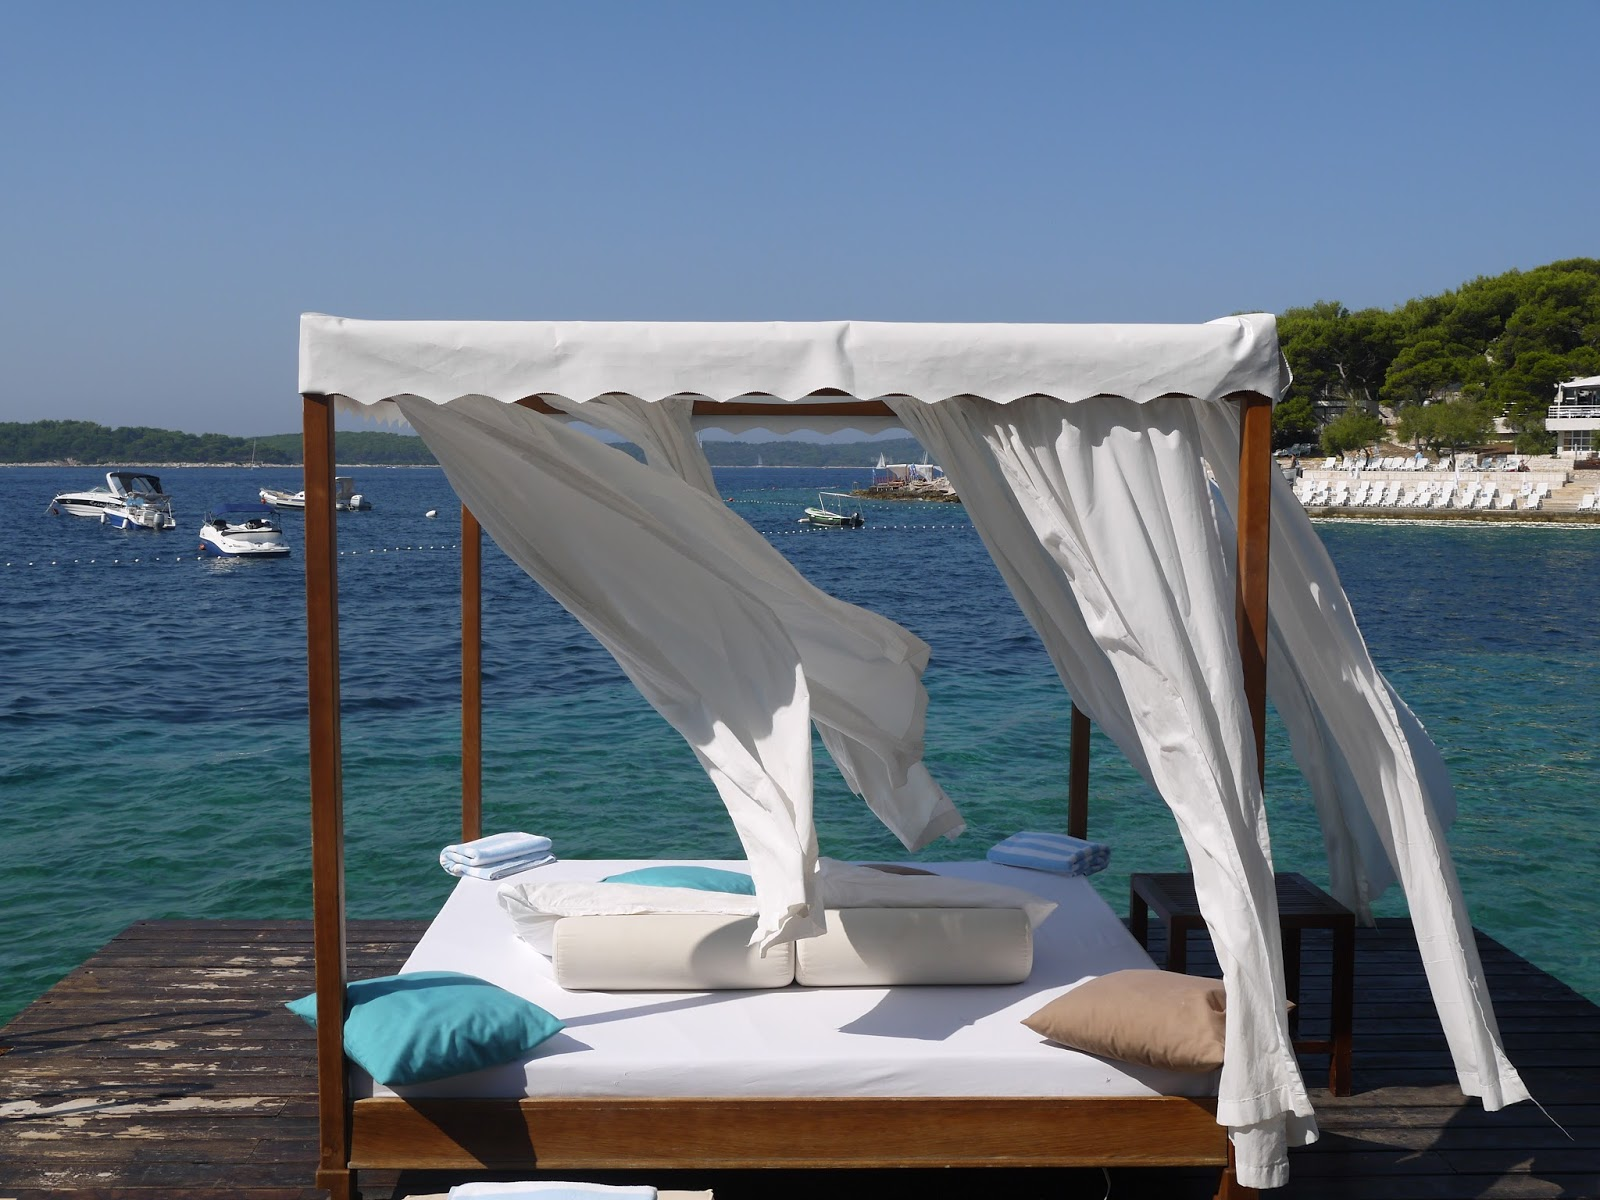 a luxurious day at bonj les bains beach club hvar the lifestyle bonj really is the picture of luxury especially if you define luxury as privacy and excellent service